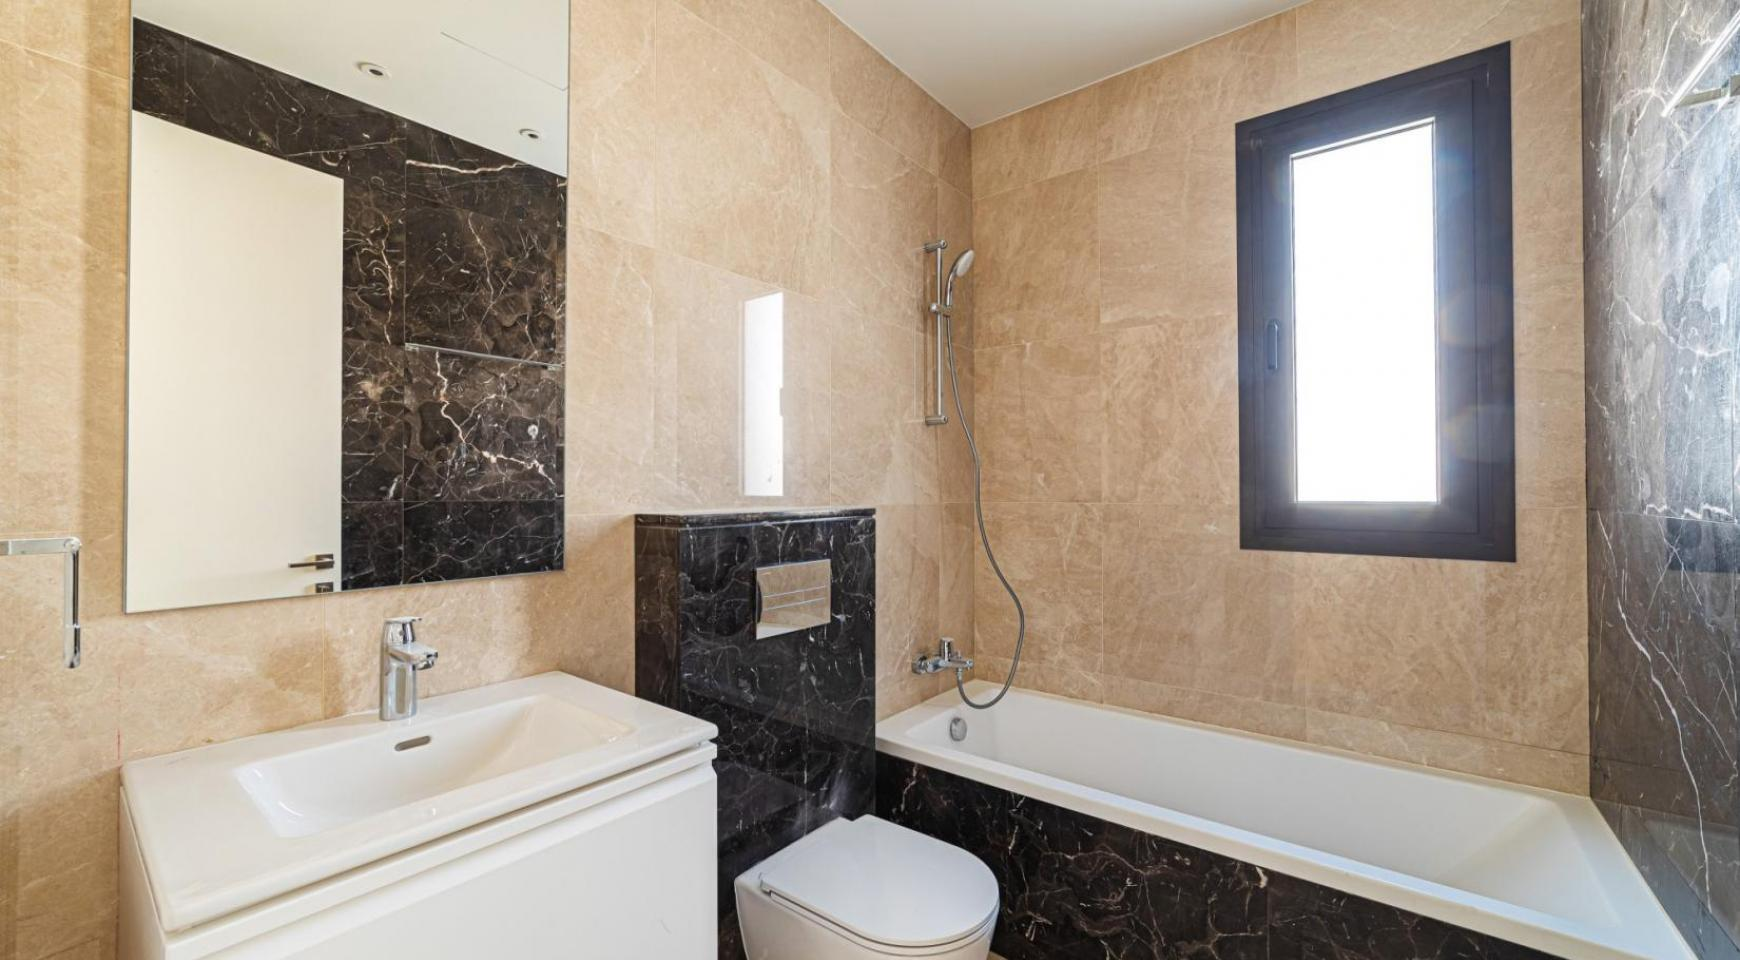 HORTENSIA RESIDENCE, Apt. 101. 2 Bedroom Apartment  in a New Complex near the Sea - 26